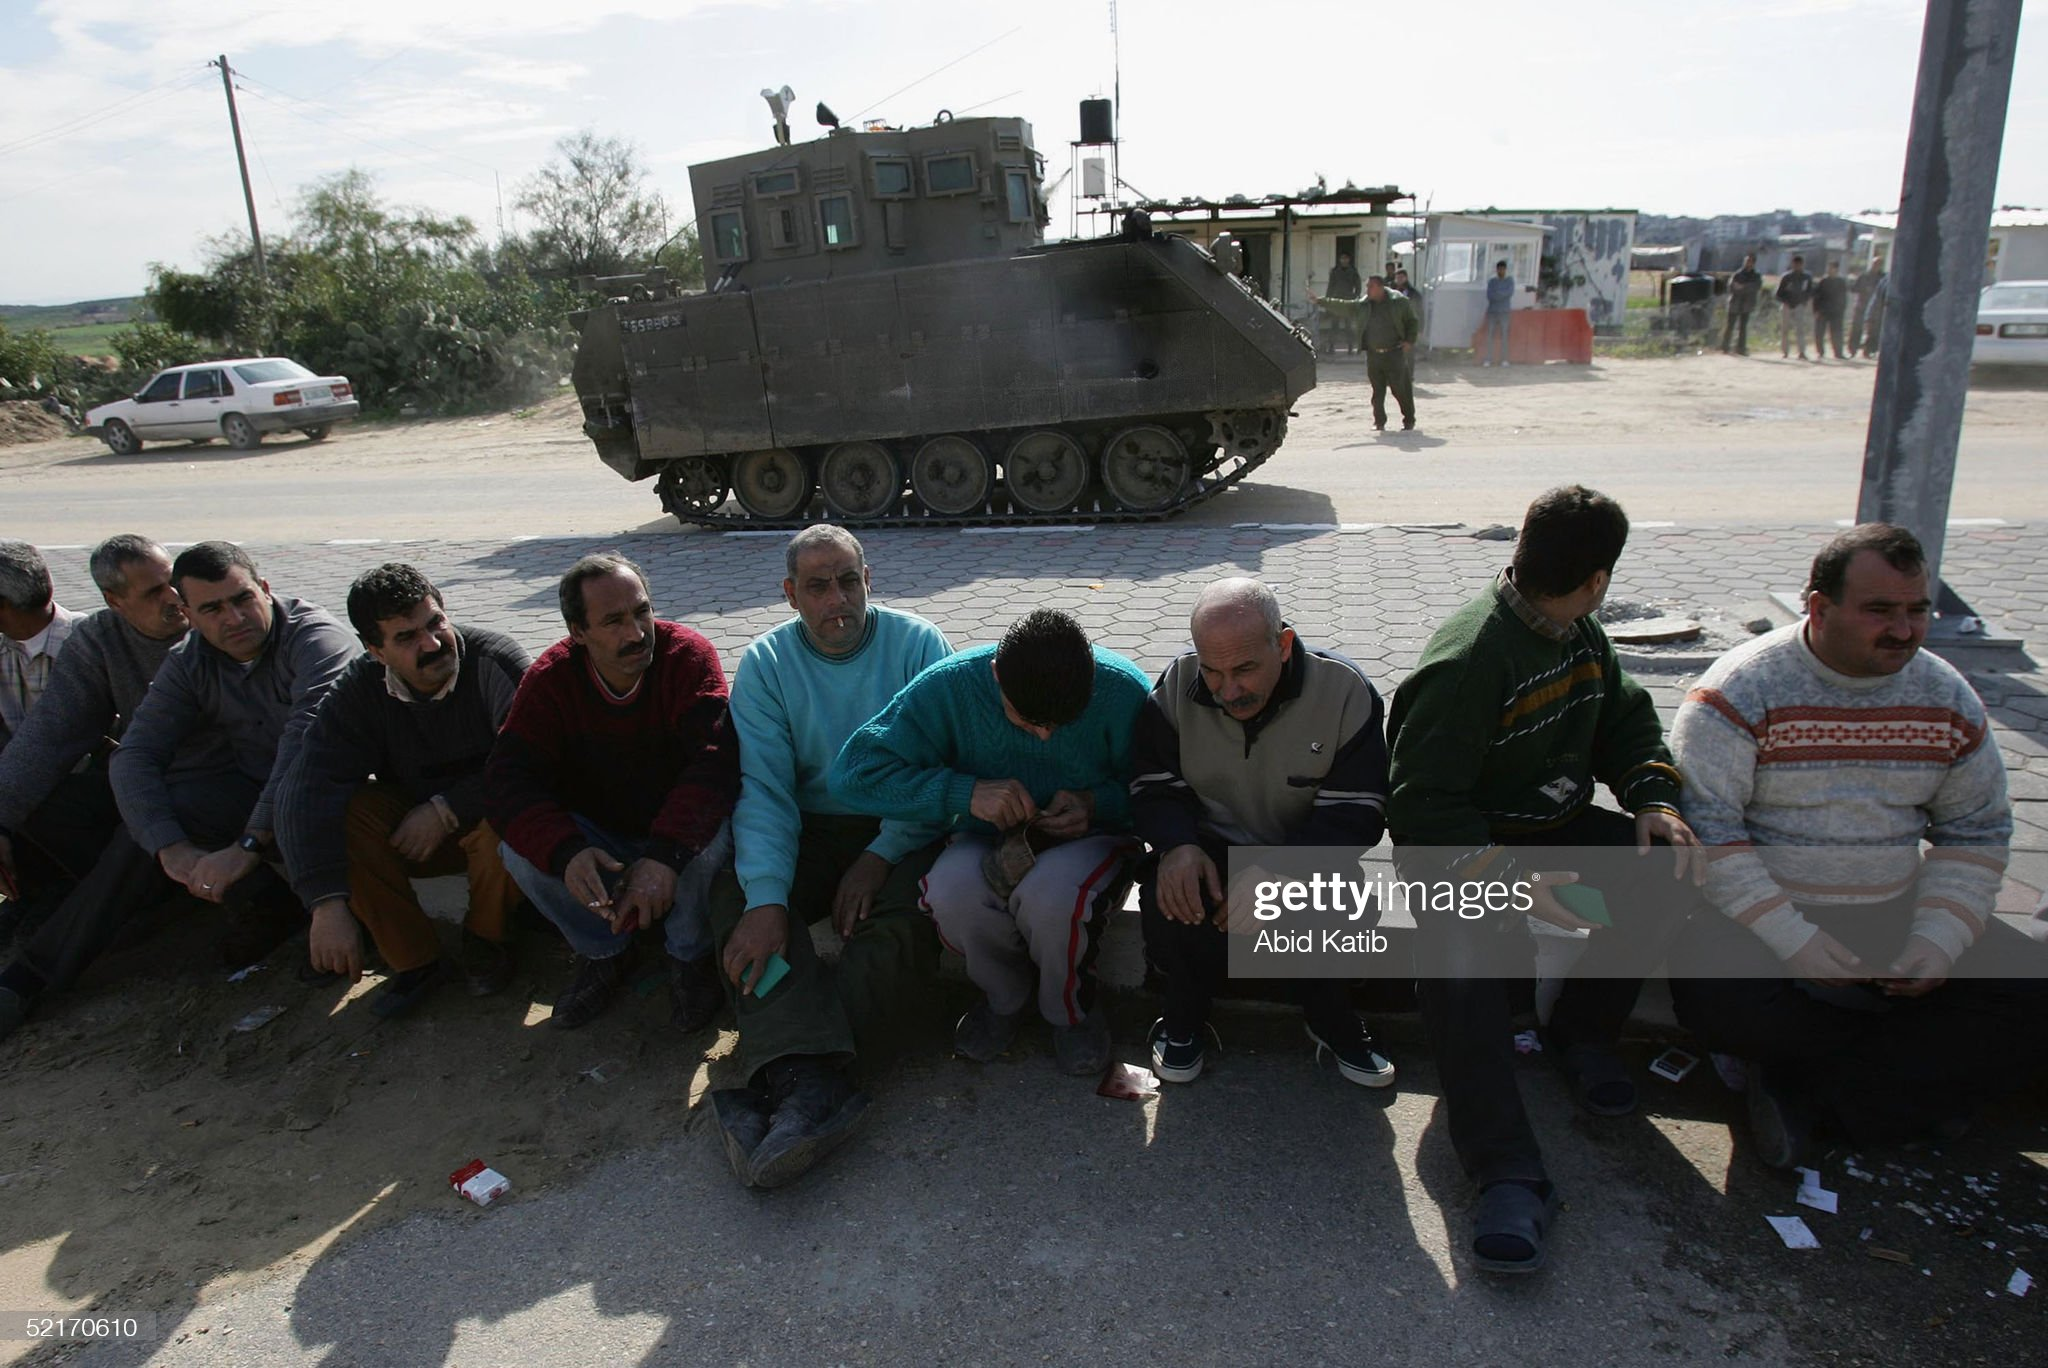 https://media.gettyimages.com/photos/an-israeli-tank-stands-guard-on-salah-aldeen-main-road-as-palestinian-picture-id52170610?s=2048x2048